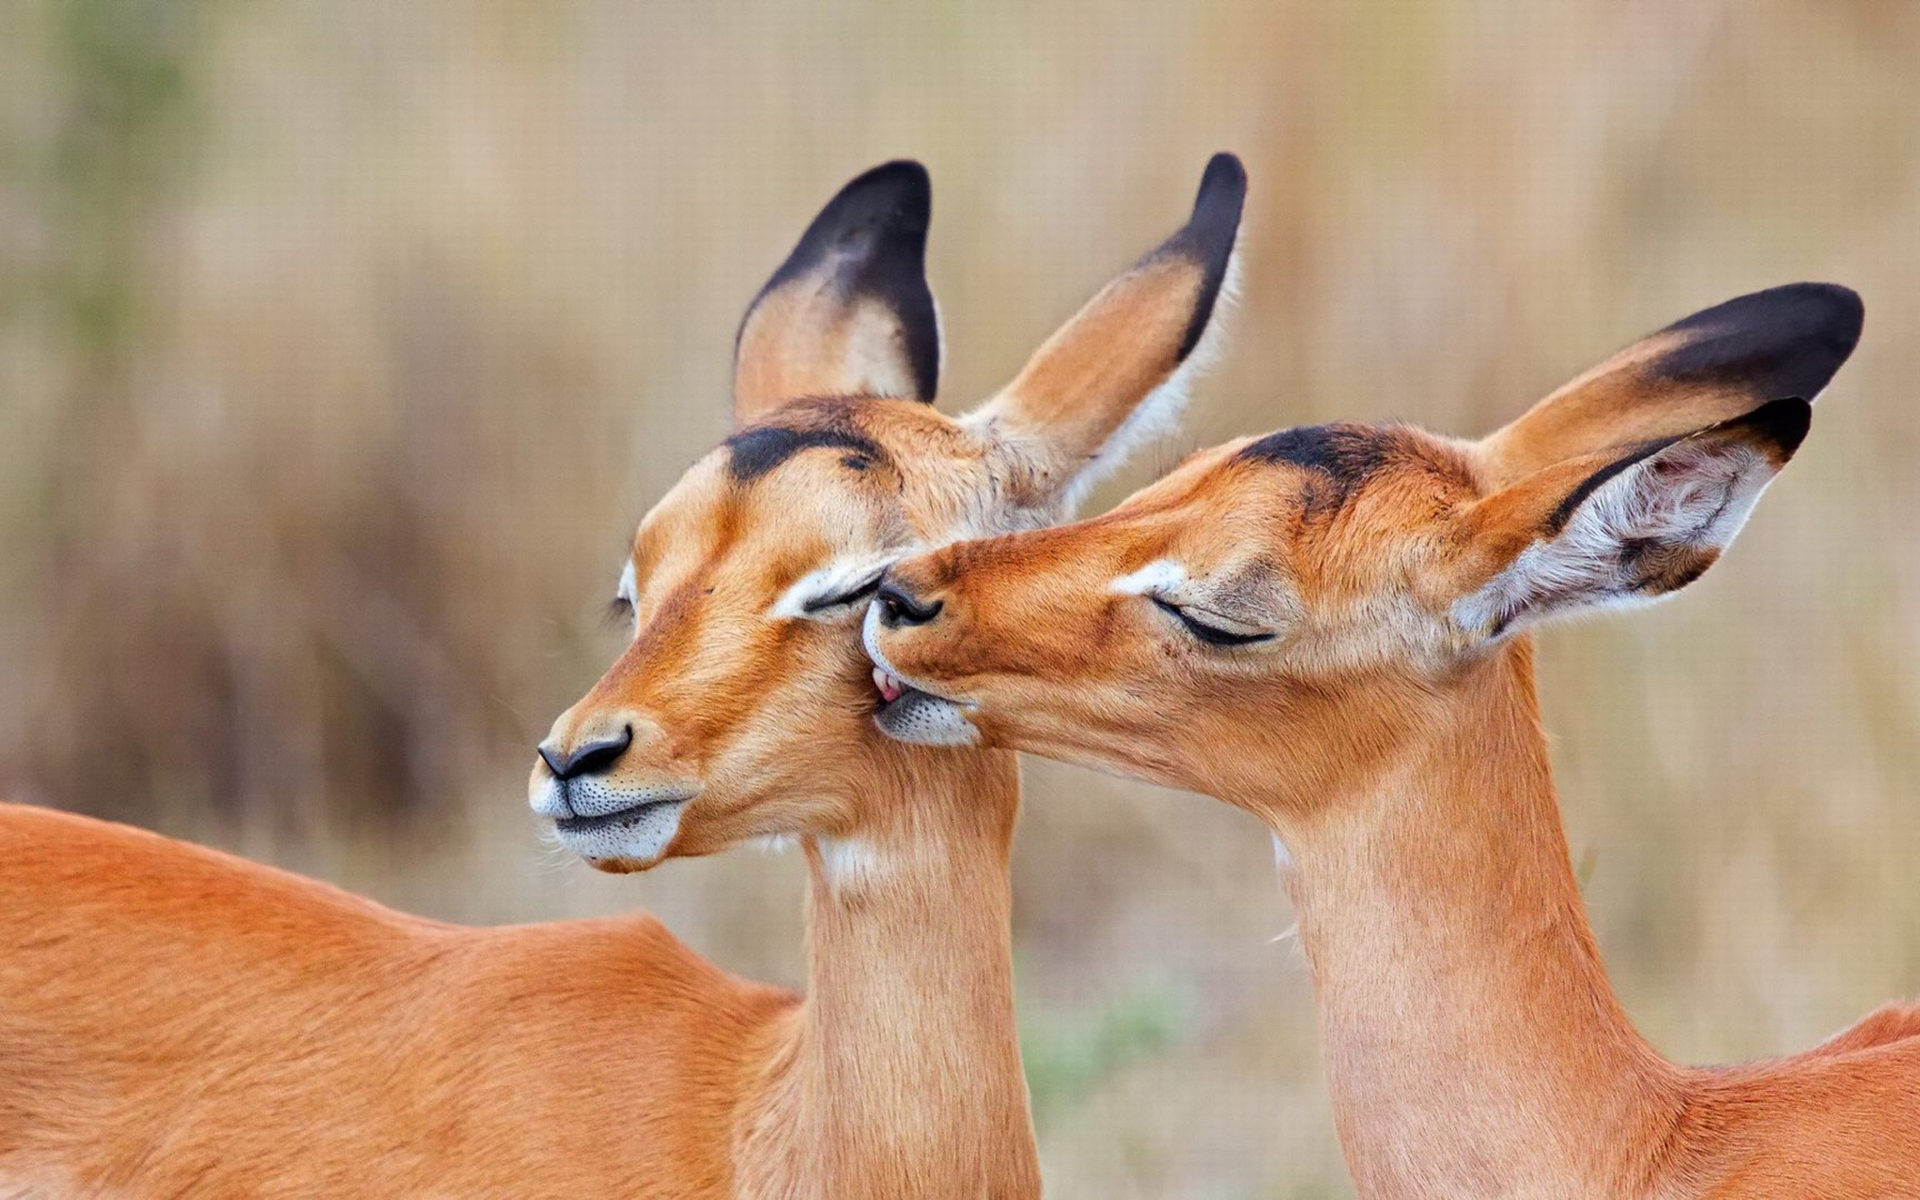 3d Wallpapers For Pc 1920x1080 Free Download Impala Animal Hd Wallpapers Wallpapers13 Com